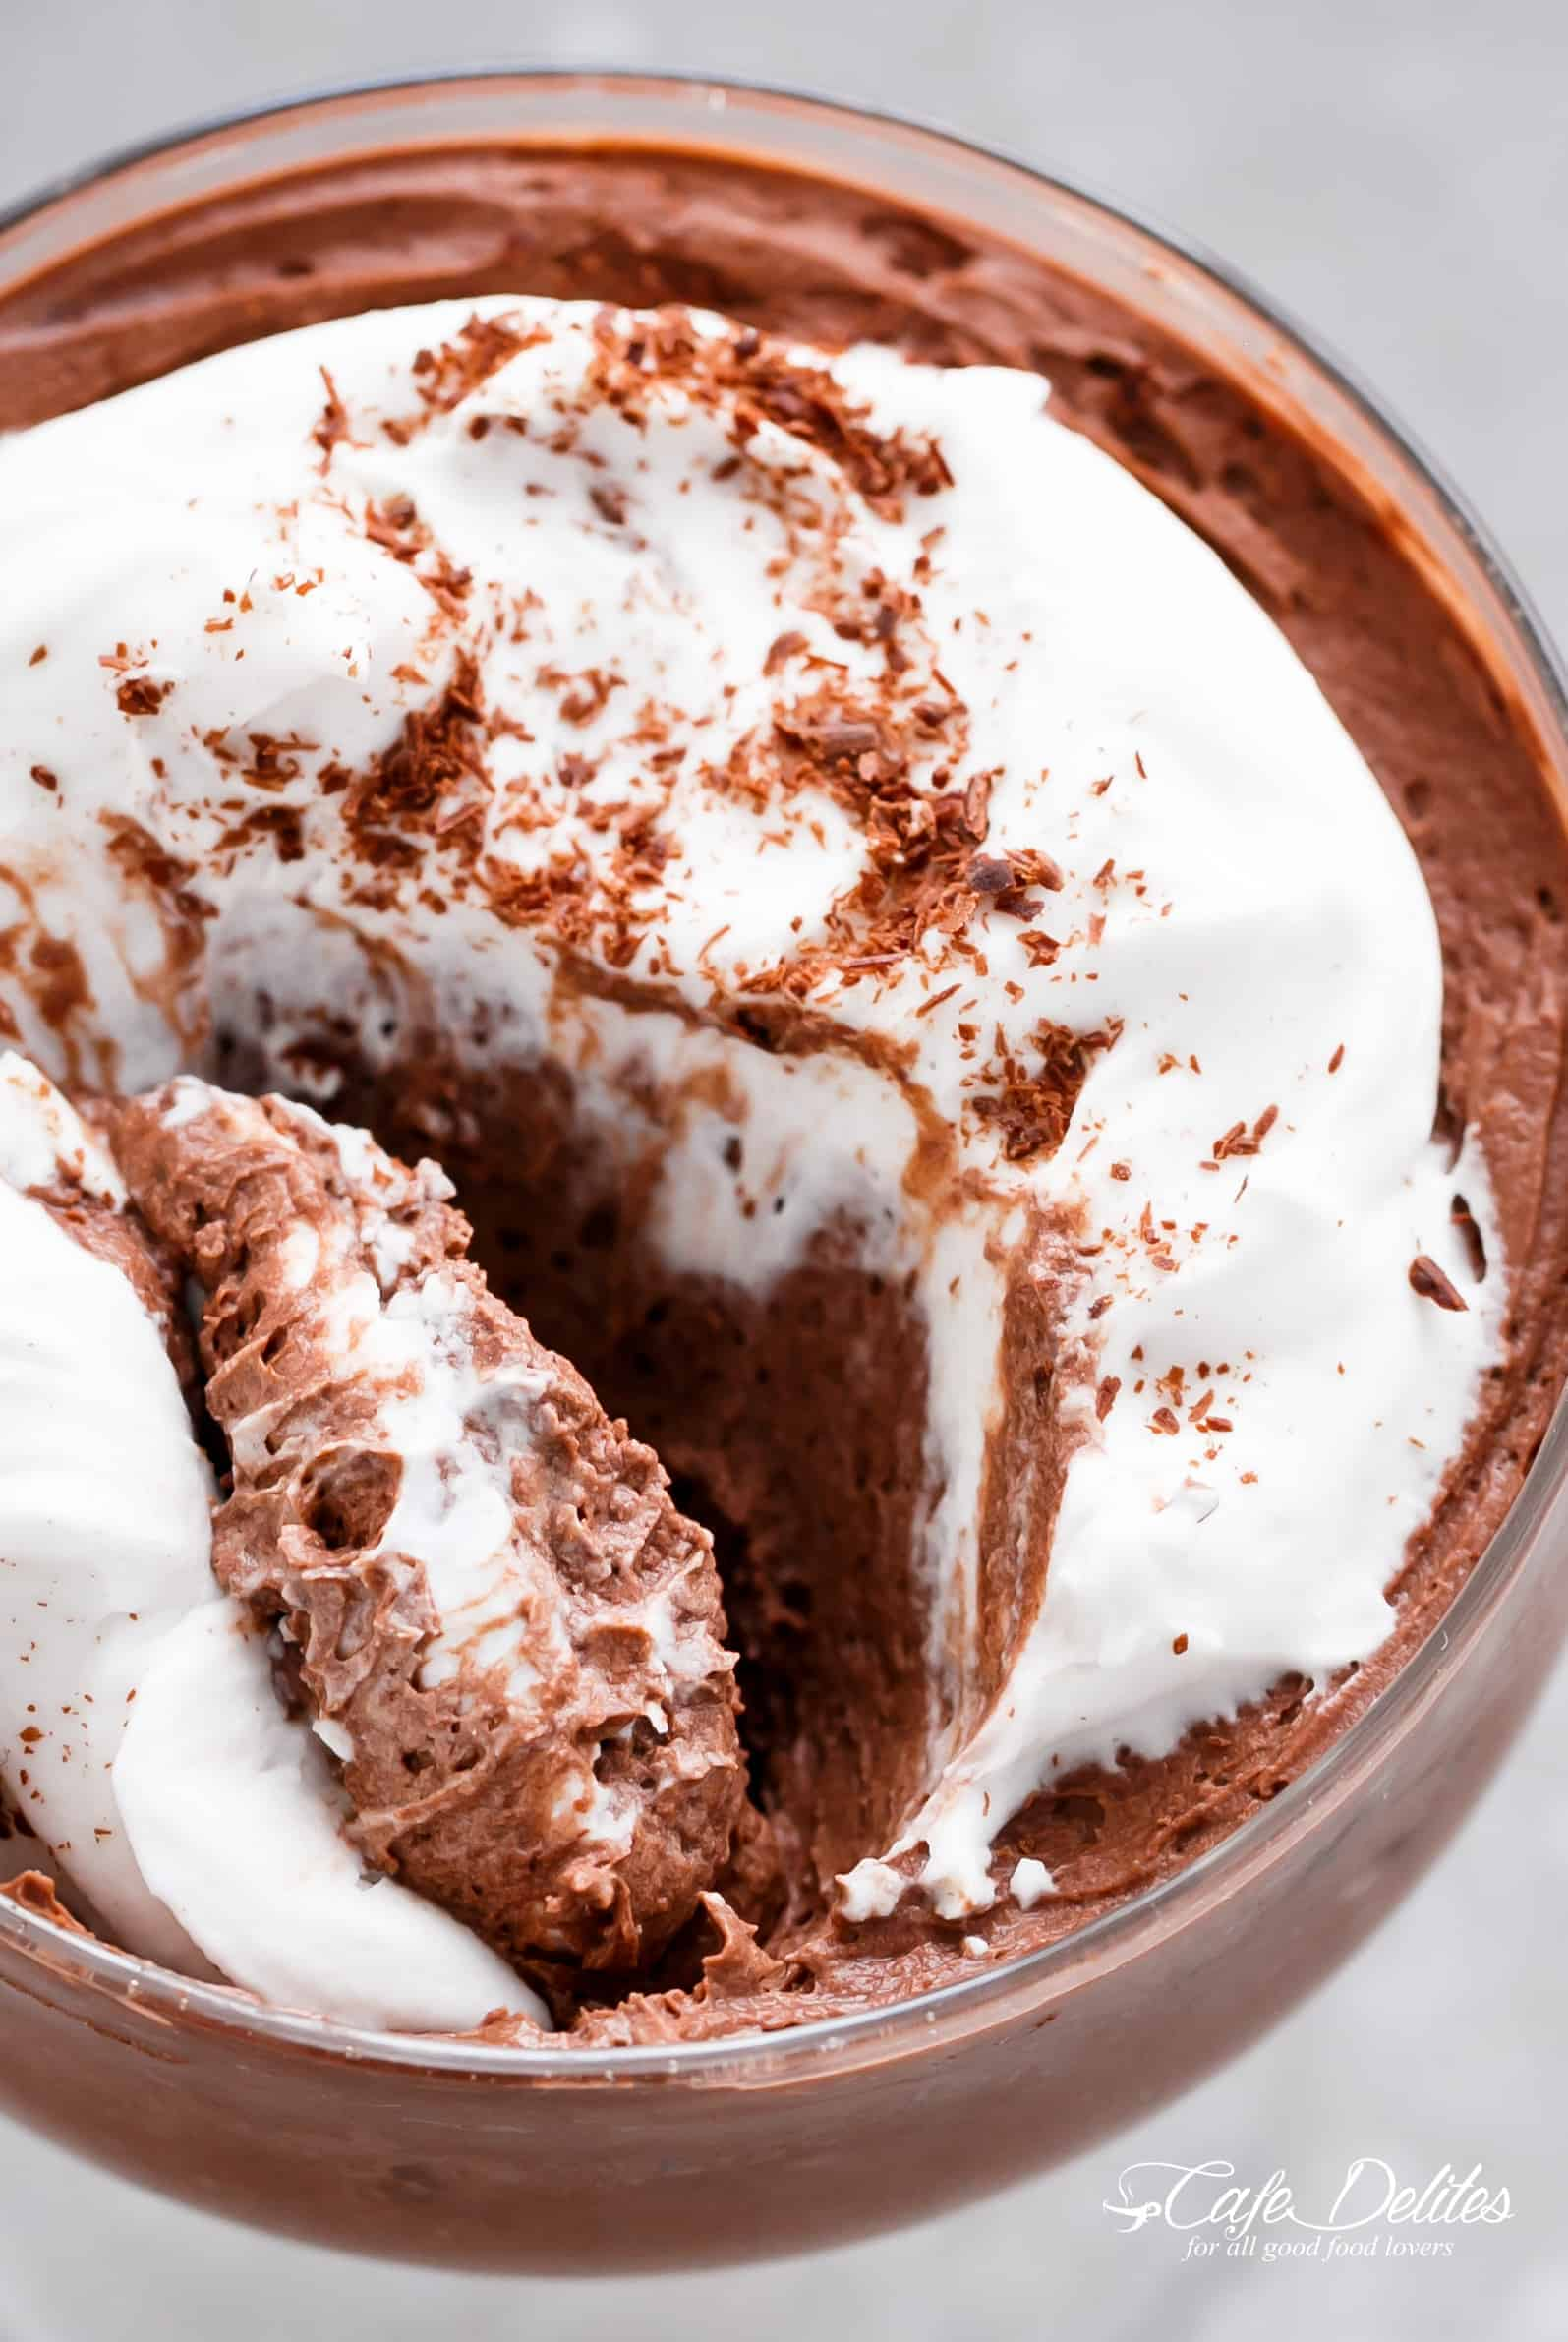 Recettes Faciles Keto 3 Ingredient Chocolate Mousse Low Carb